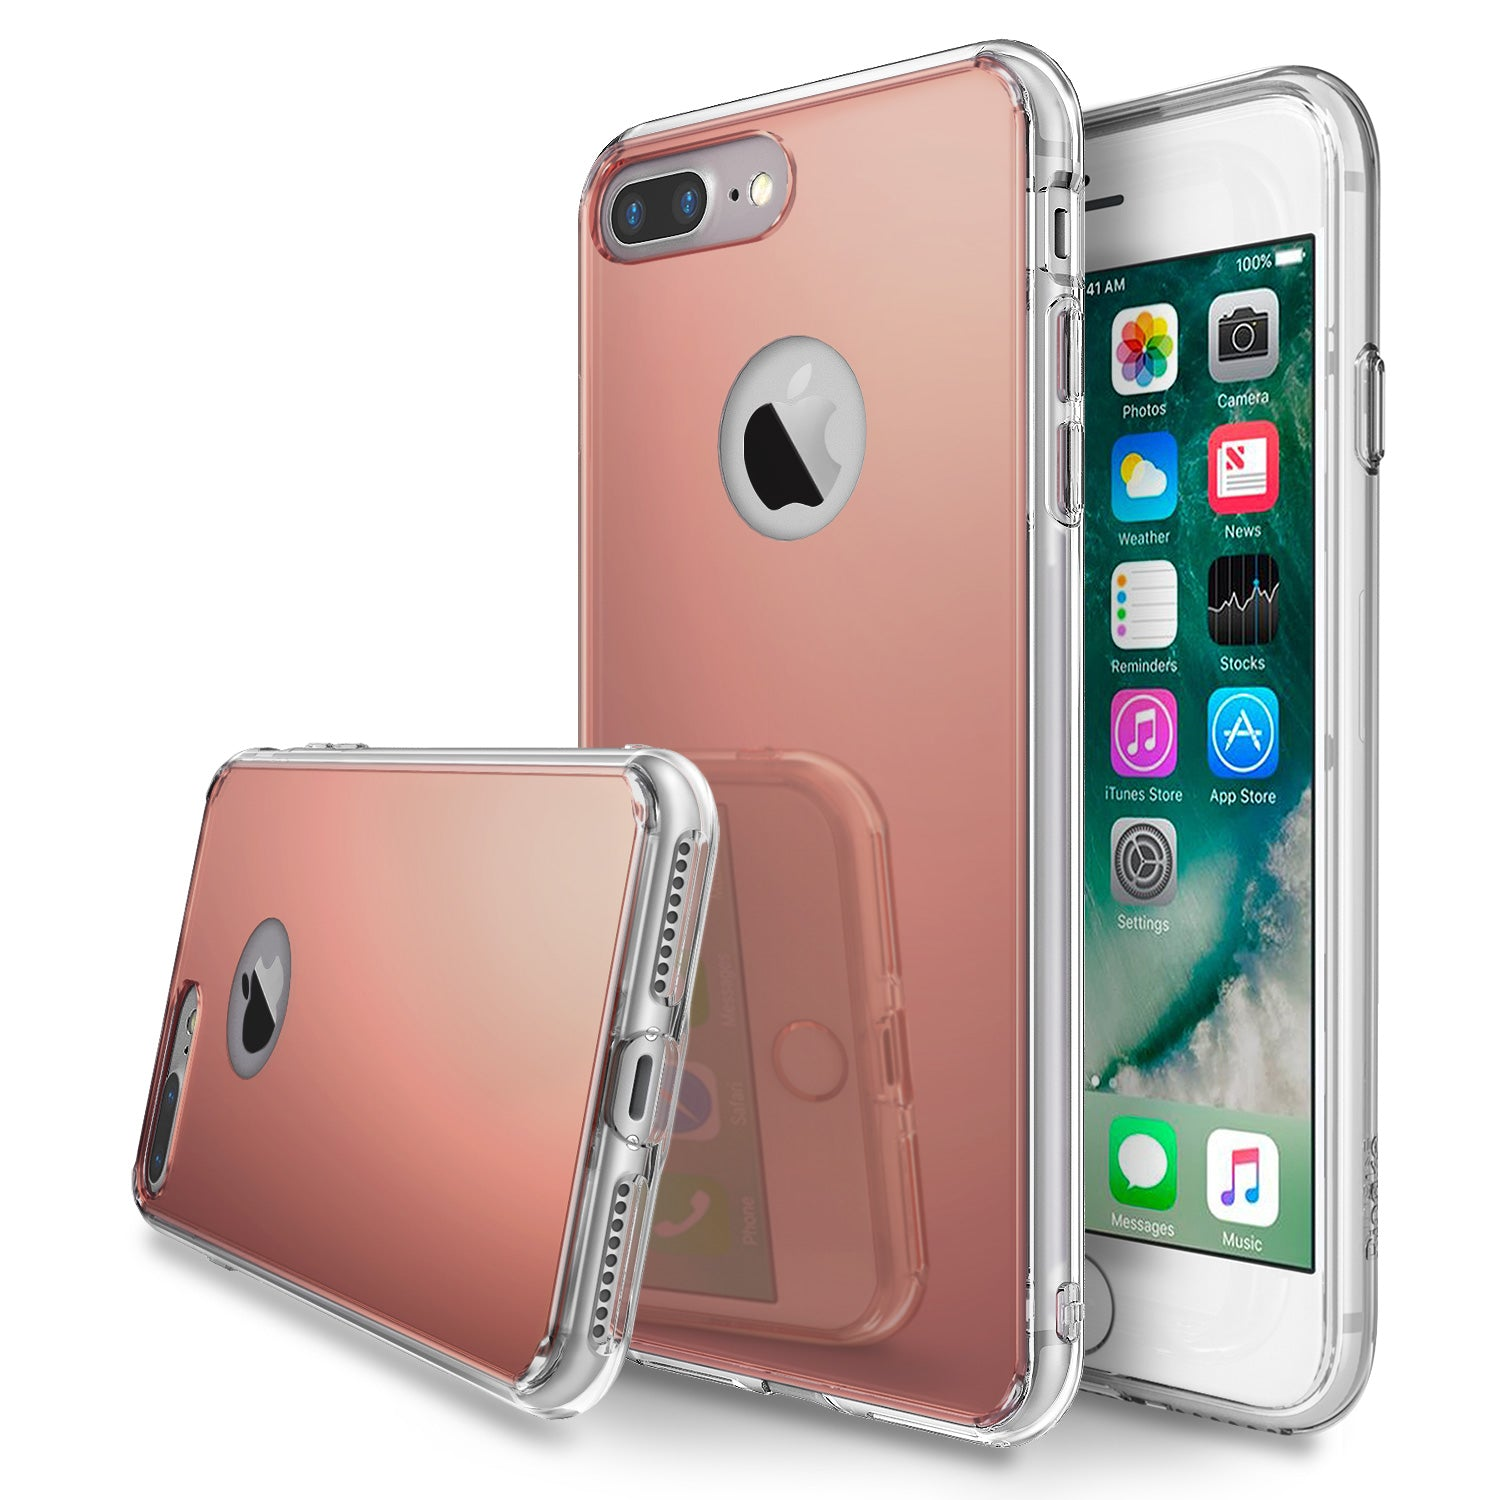 ringke mirror back case cover for iphone 7 plus 8 plus main rose gold